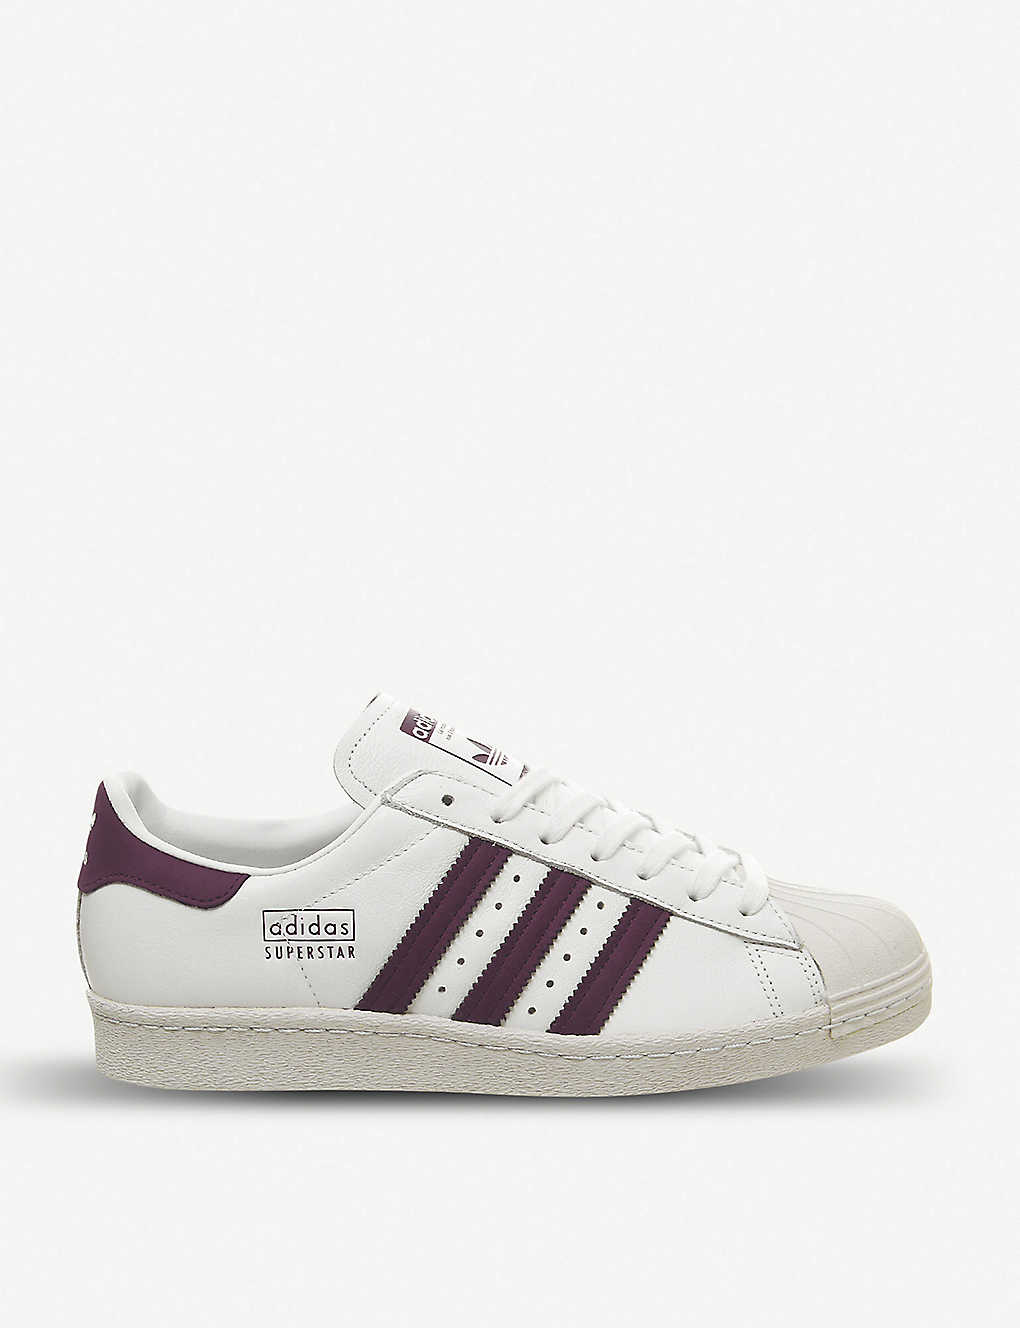 promo code 21ce1 42045 Superstar 80s leather trainers - White maroon crystal ...